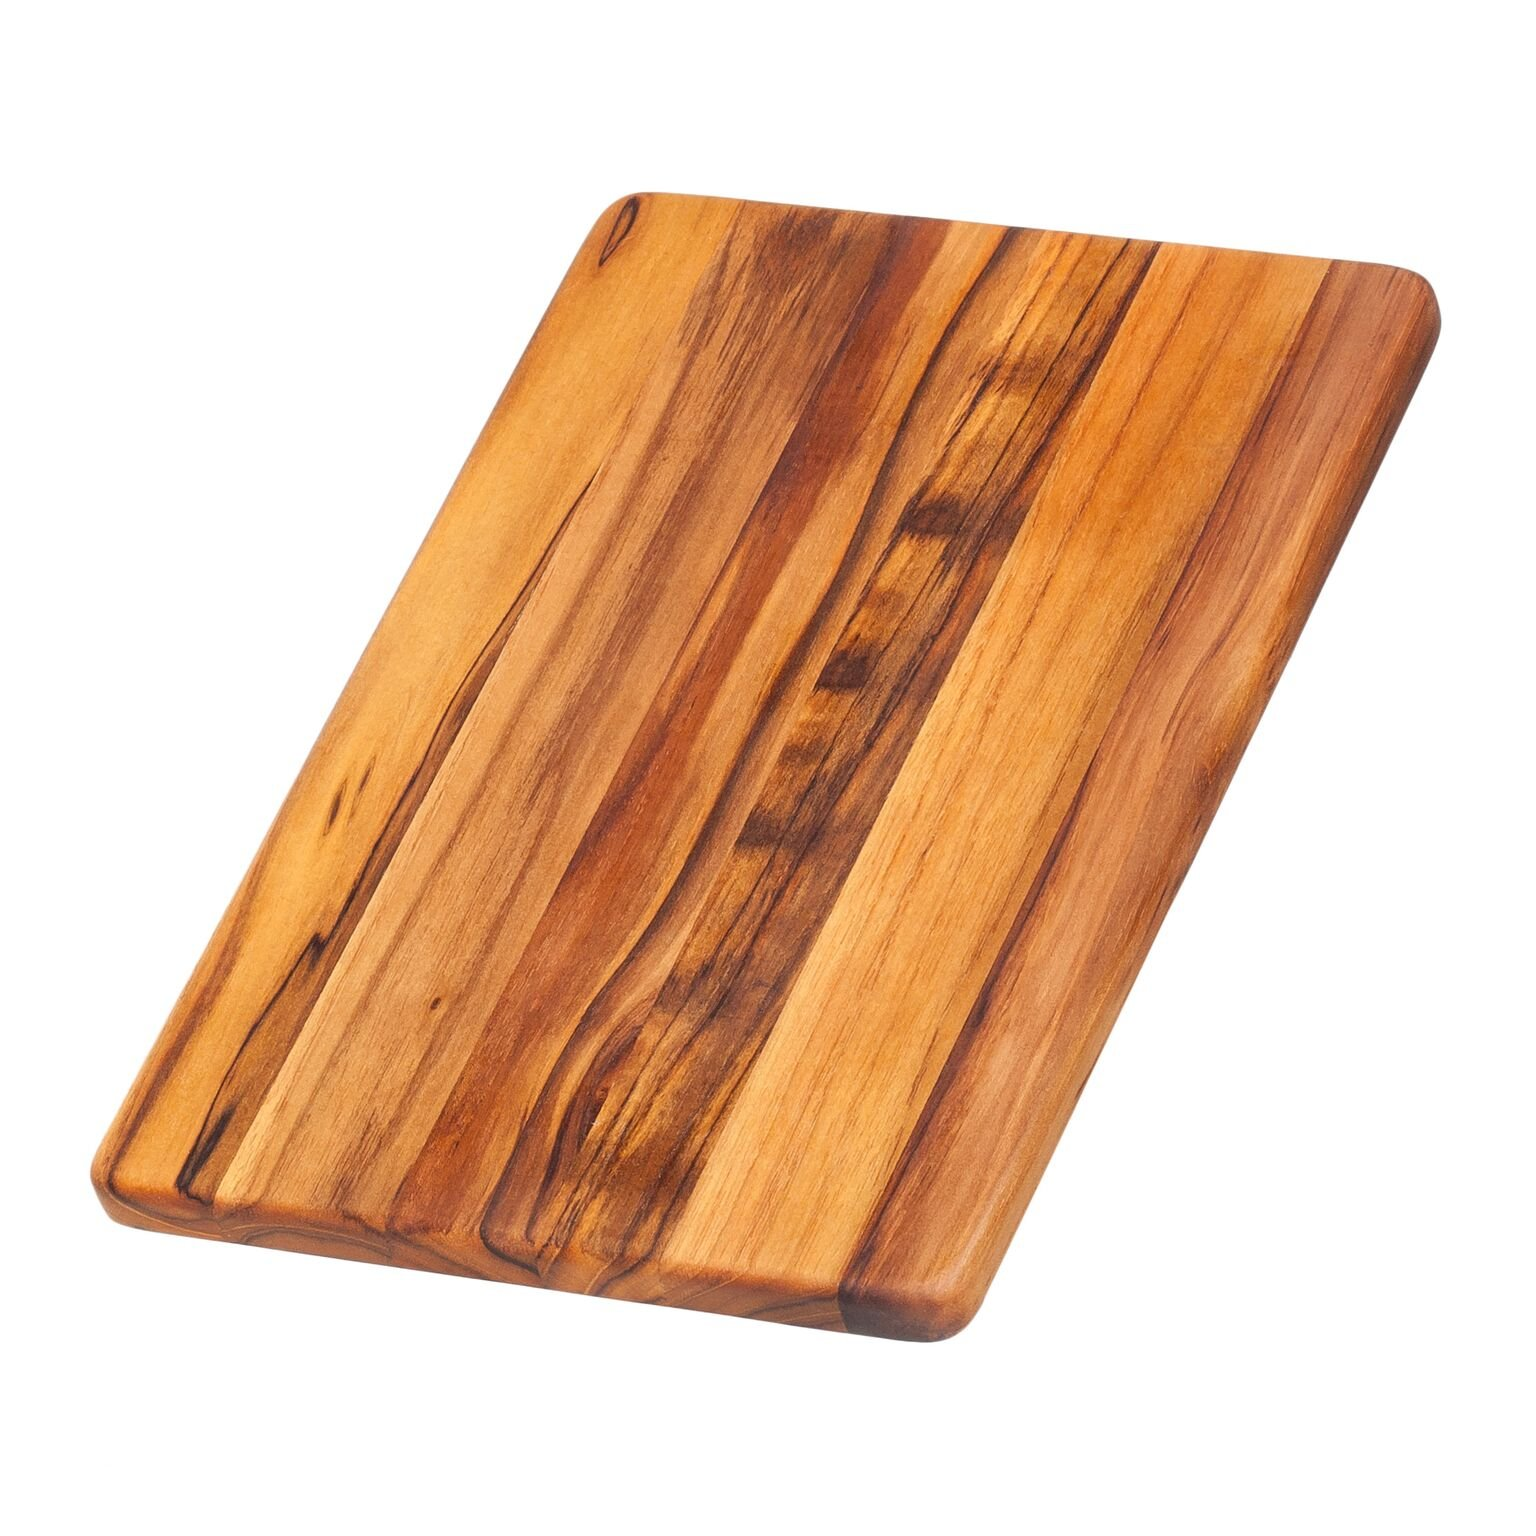 Teakhaus Teak Cutting Board - Rectangle Chopping And Serving Board (12 x 8 x .55 in.) - By